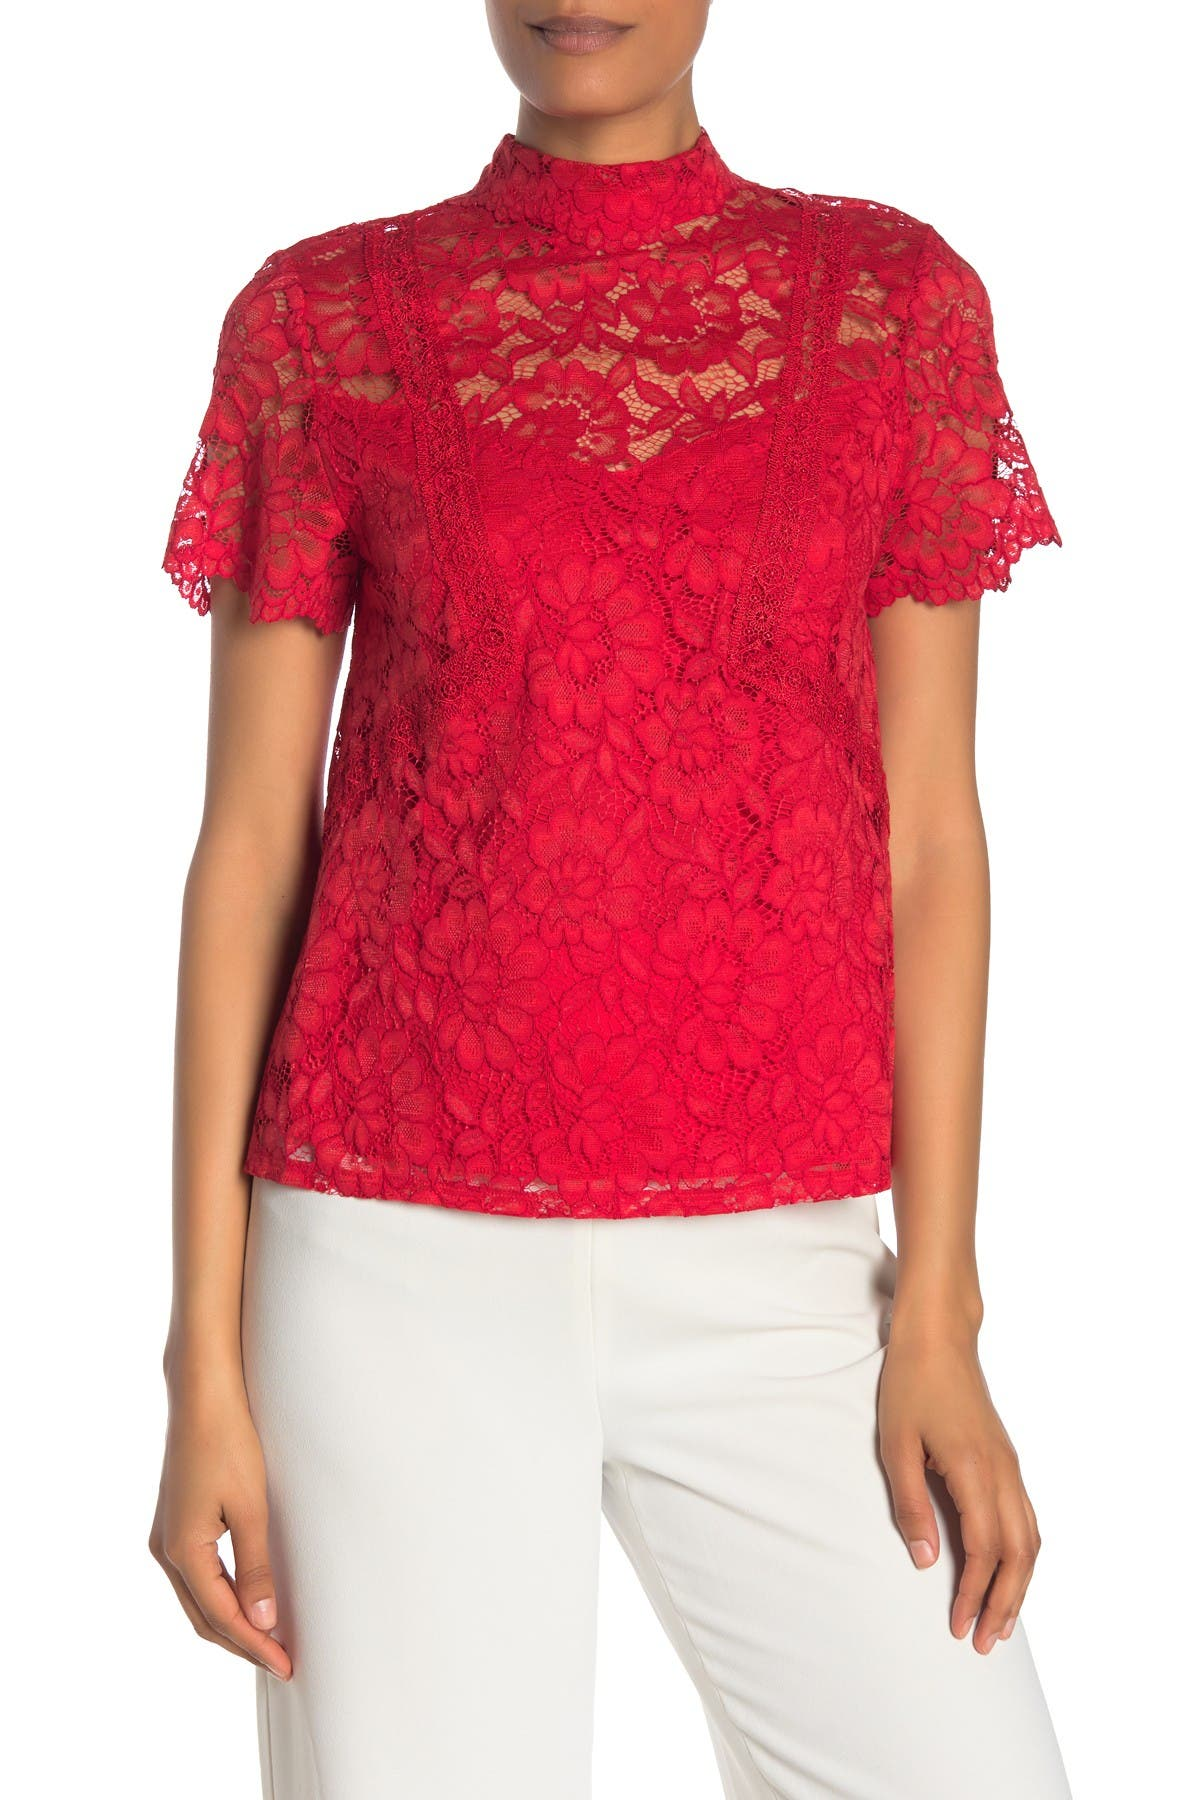 Image of Laundry By Shelli Segal Lace Mock Neck Top